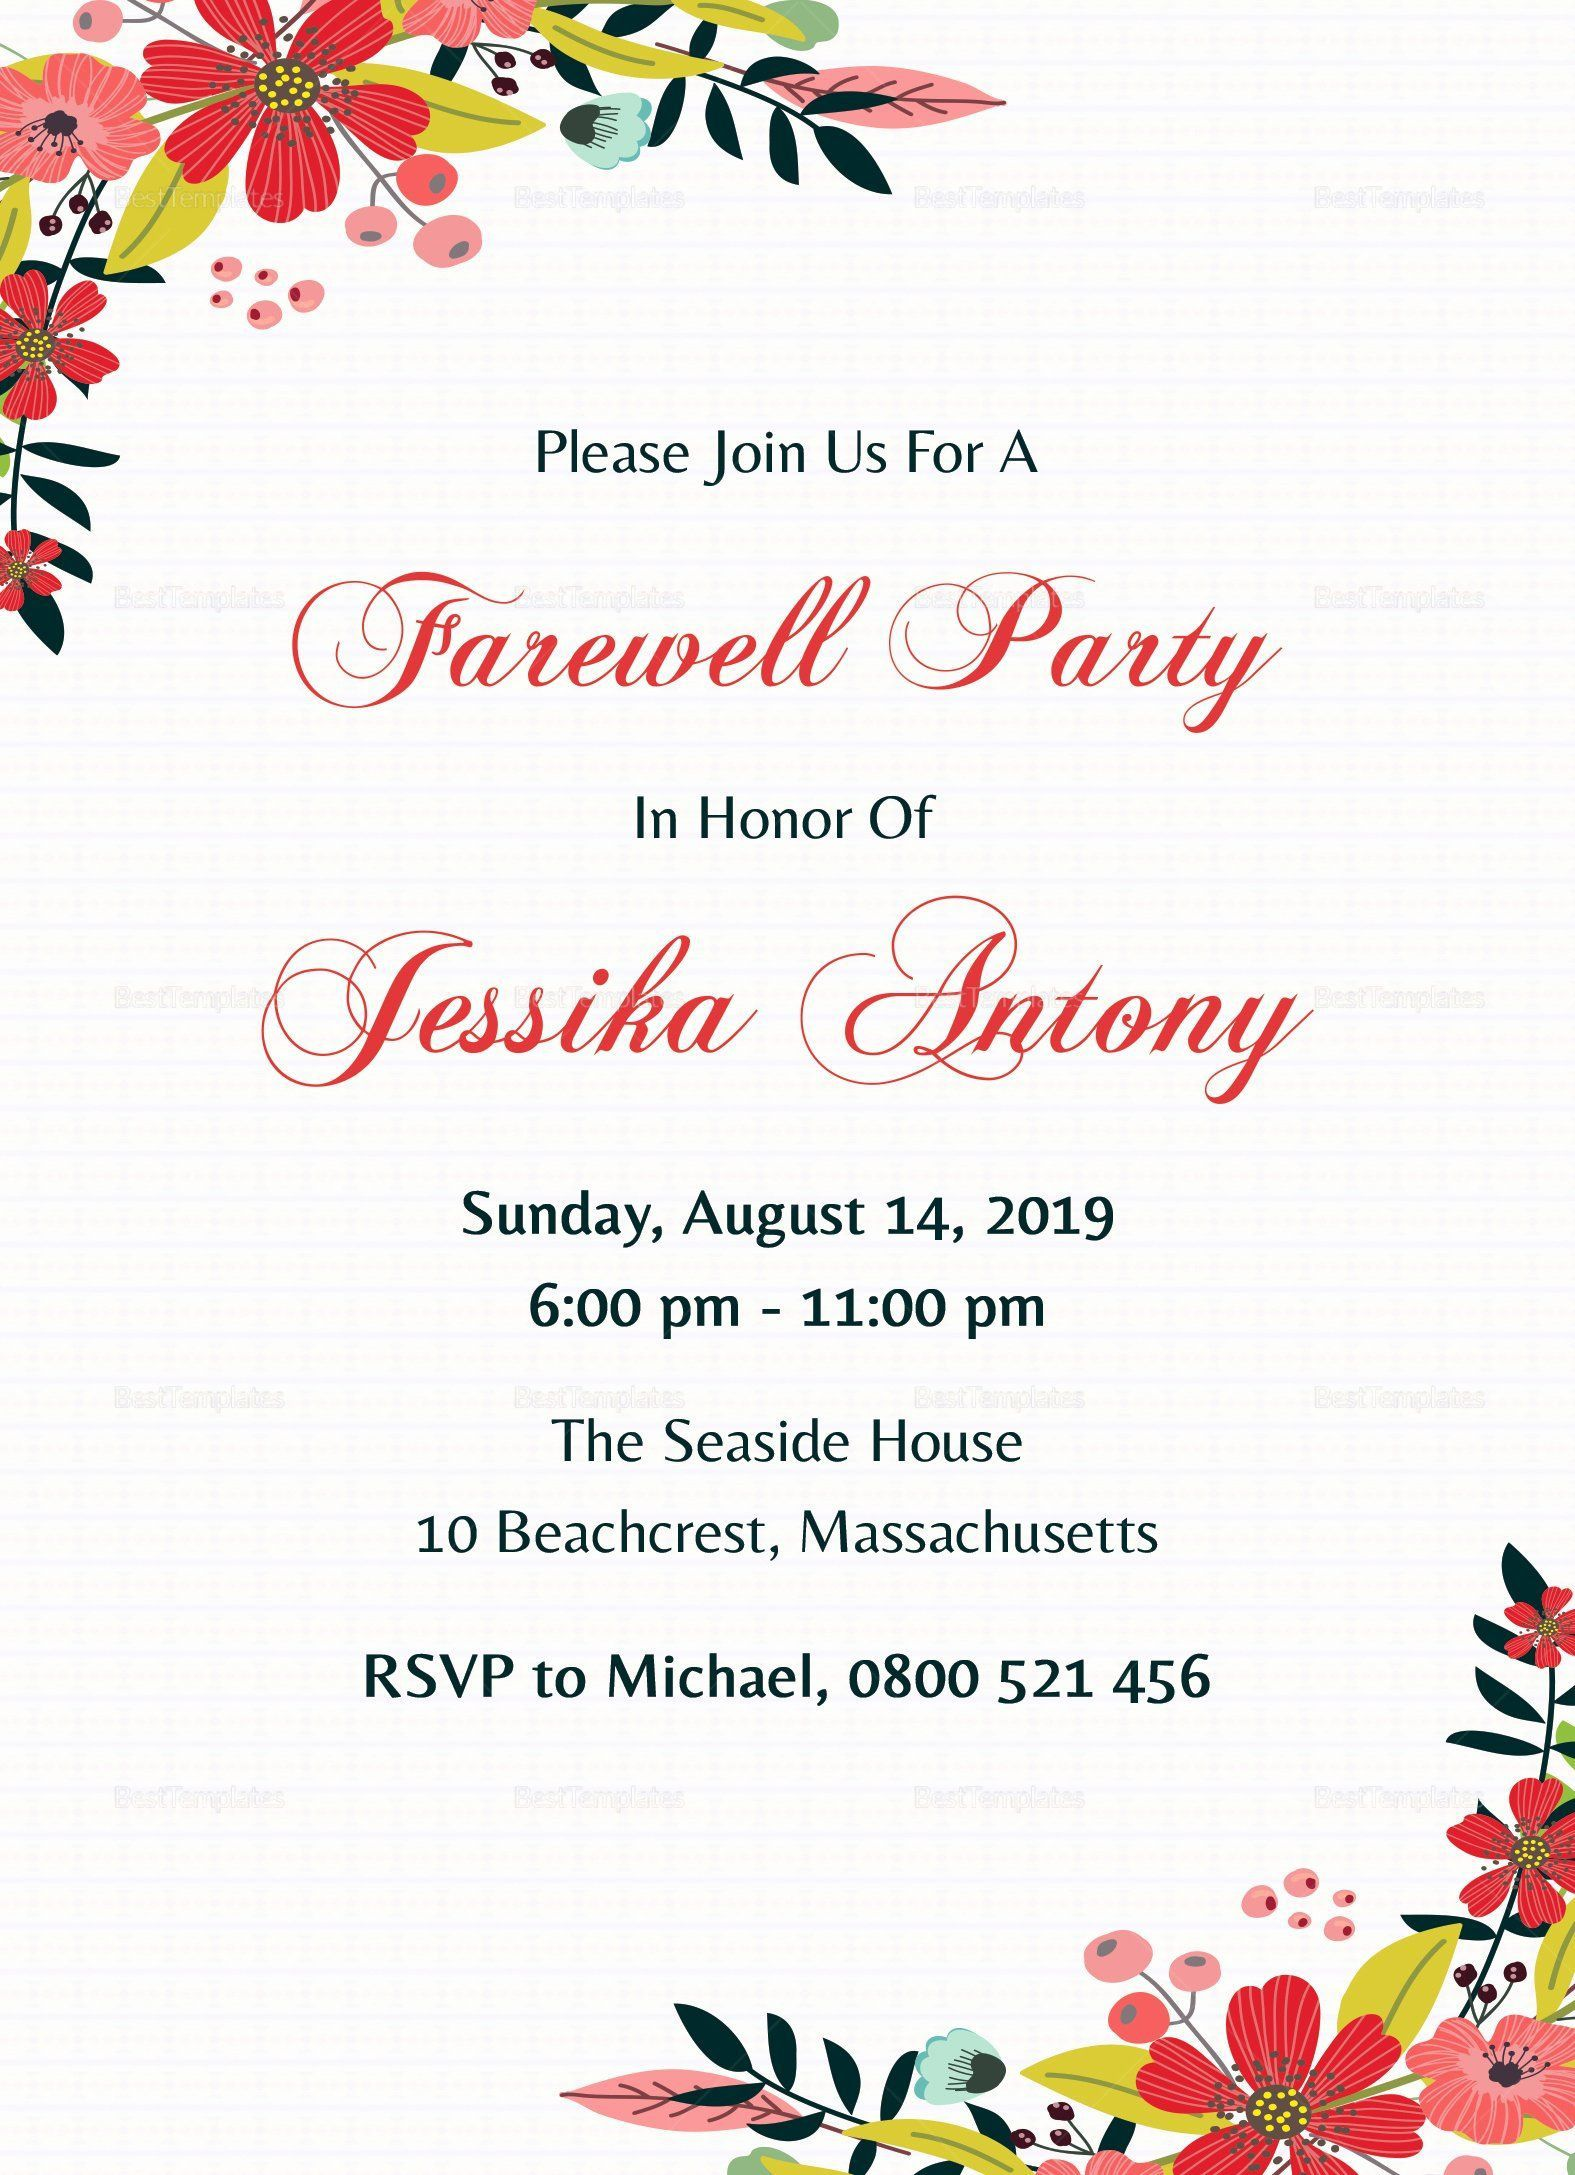 001 Excellent Farewell Party Invitation Template Free Photo  Email Printable WordFull